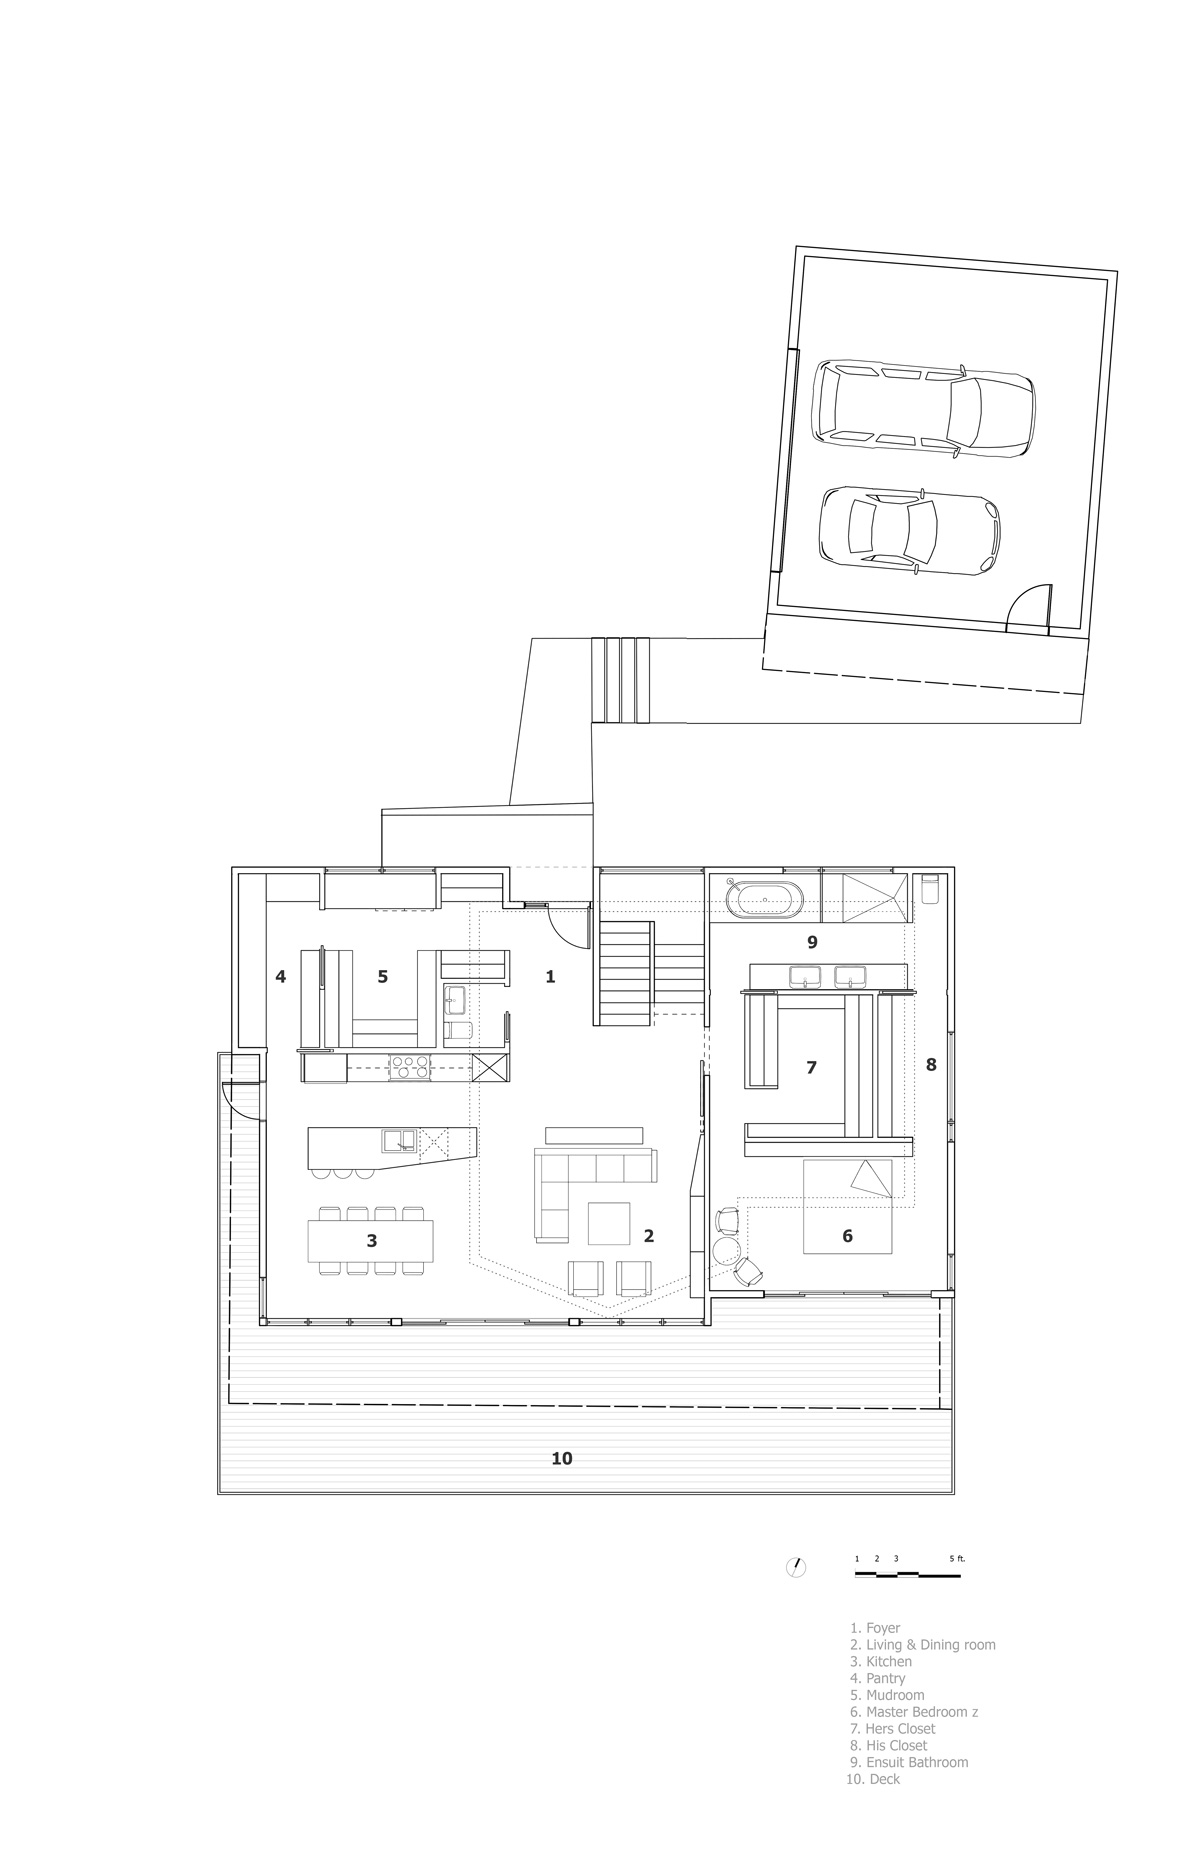 Unit 7 Architecture | Projects - Lake of the Prairies Summer Home - MAIN FLOOR PLAN